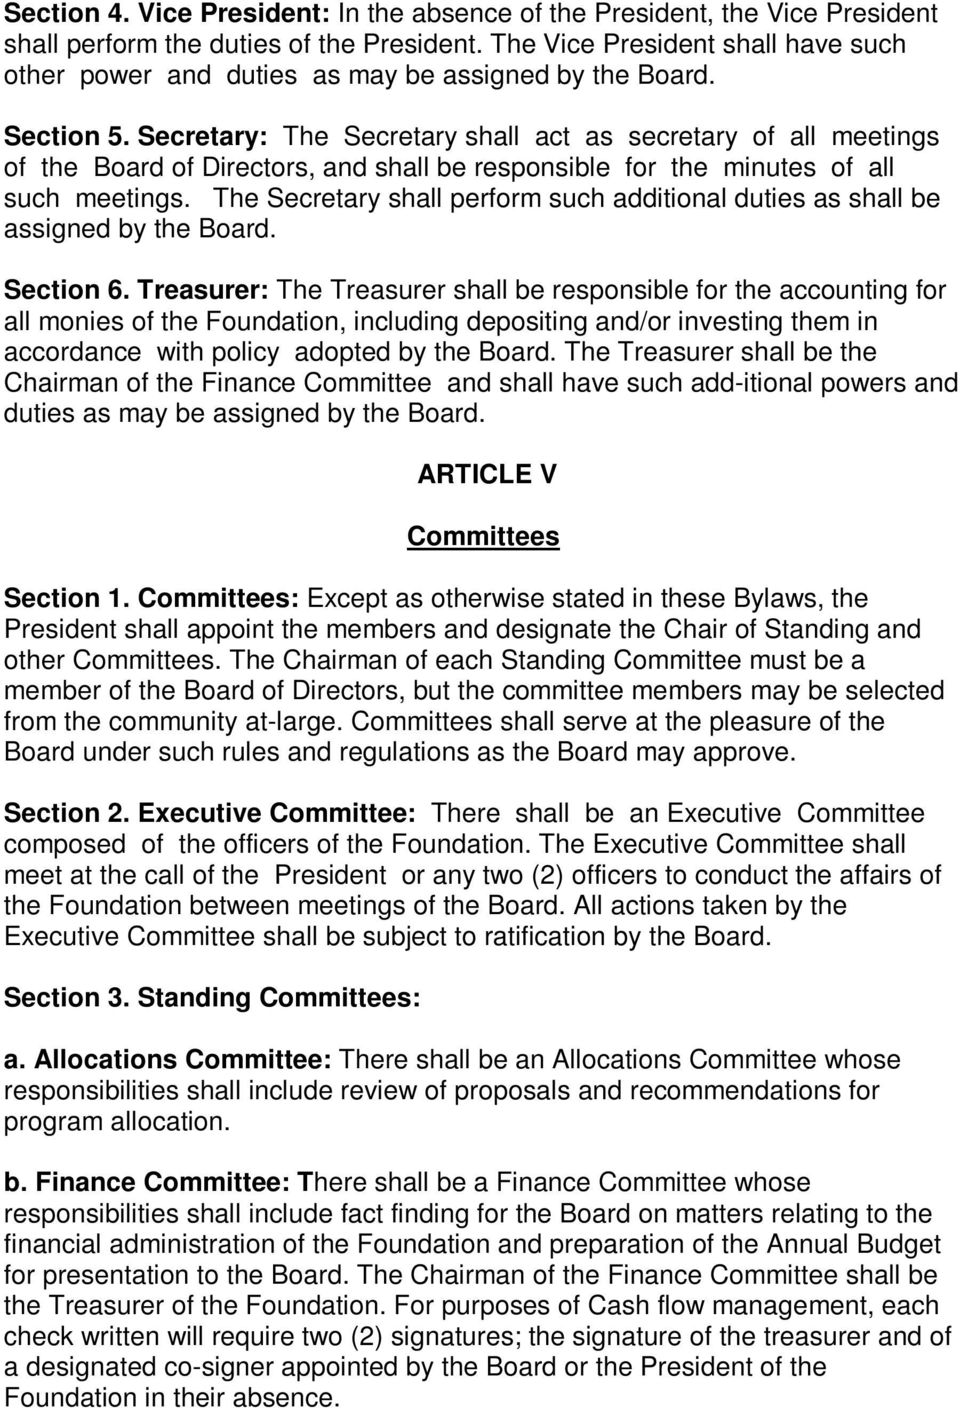 Secretary: The Secretary shall act as secretary of all meetings of the Board of Directors, and shall be responsible for the minutes of all such meetings.